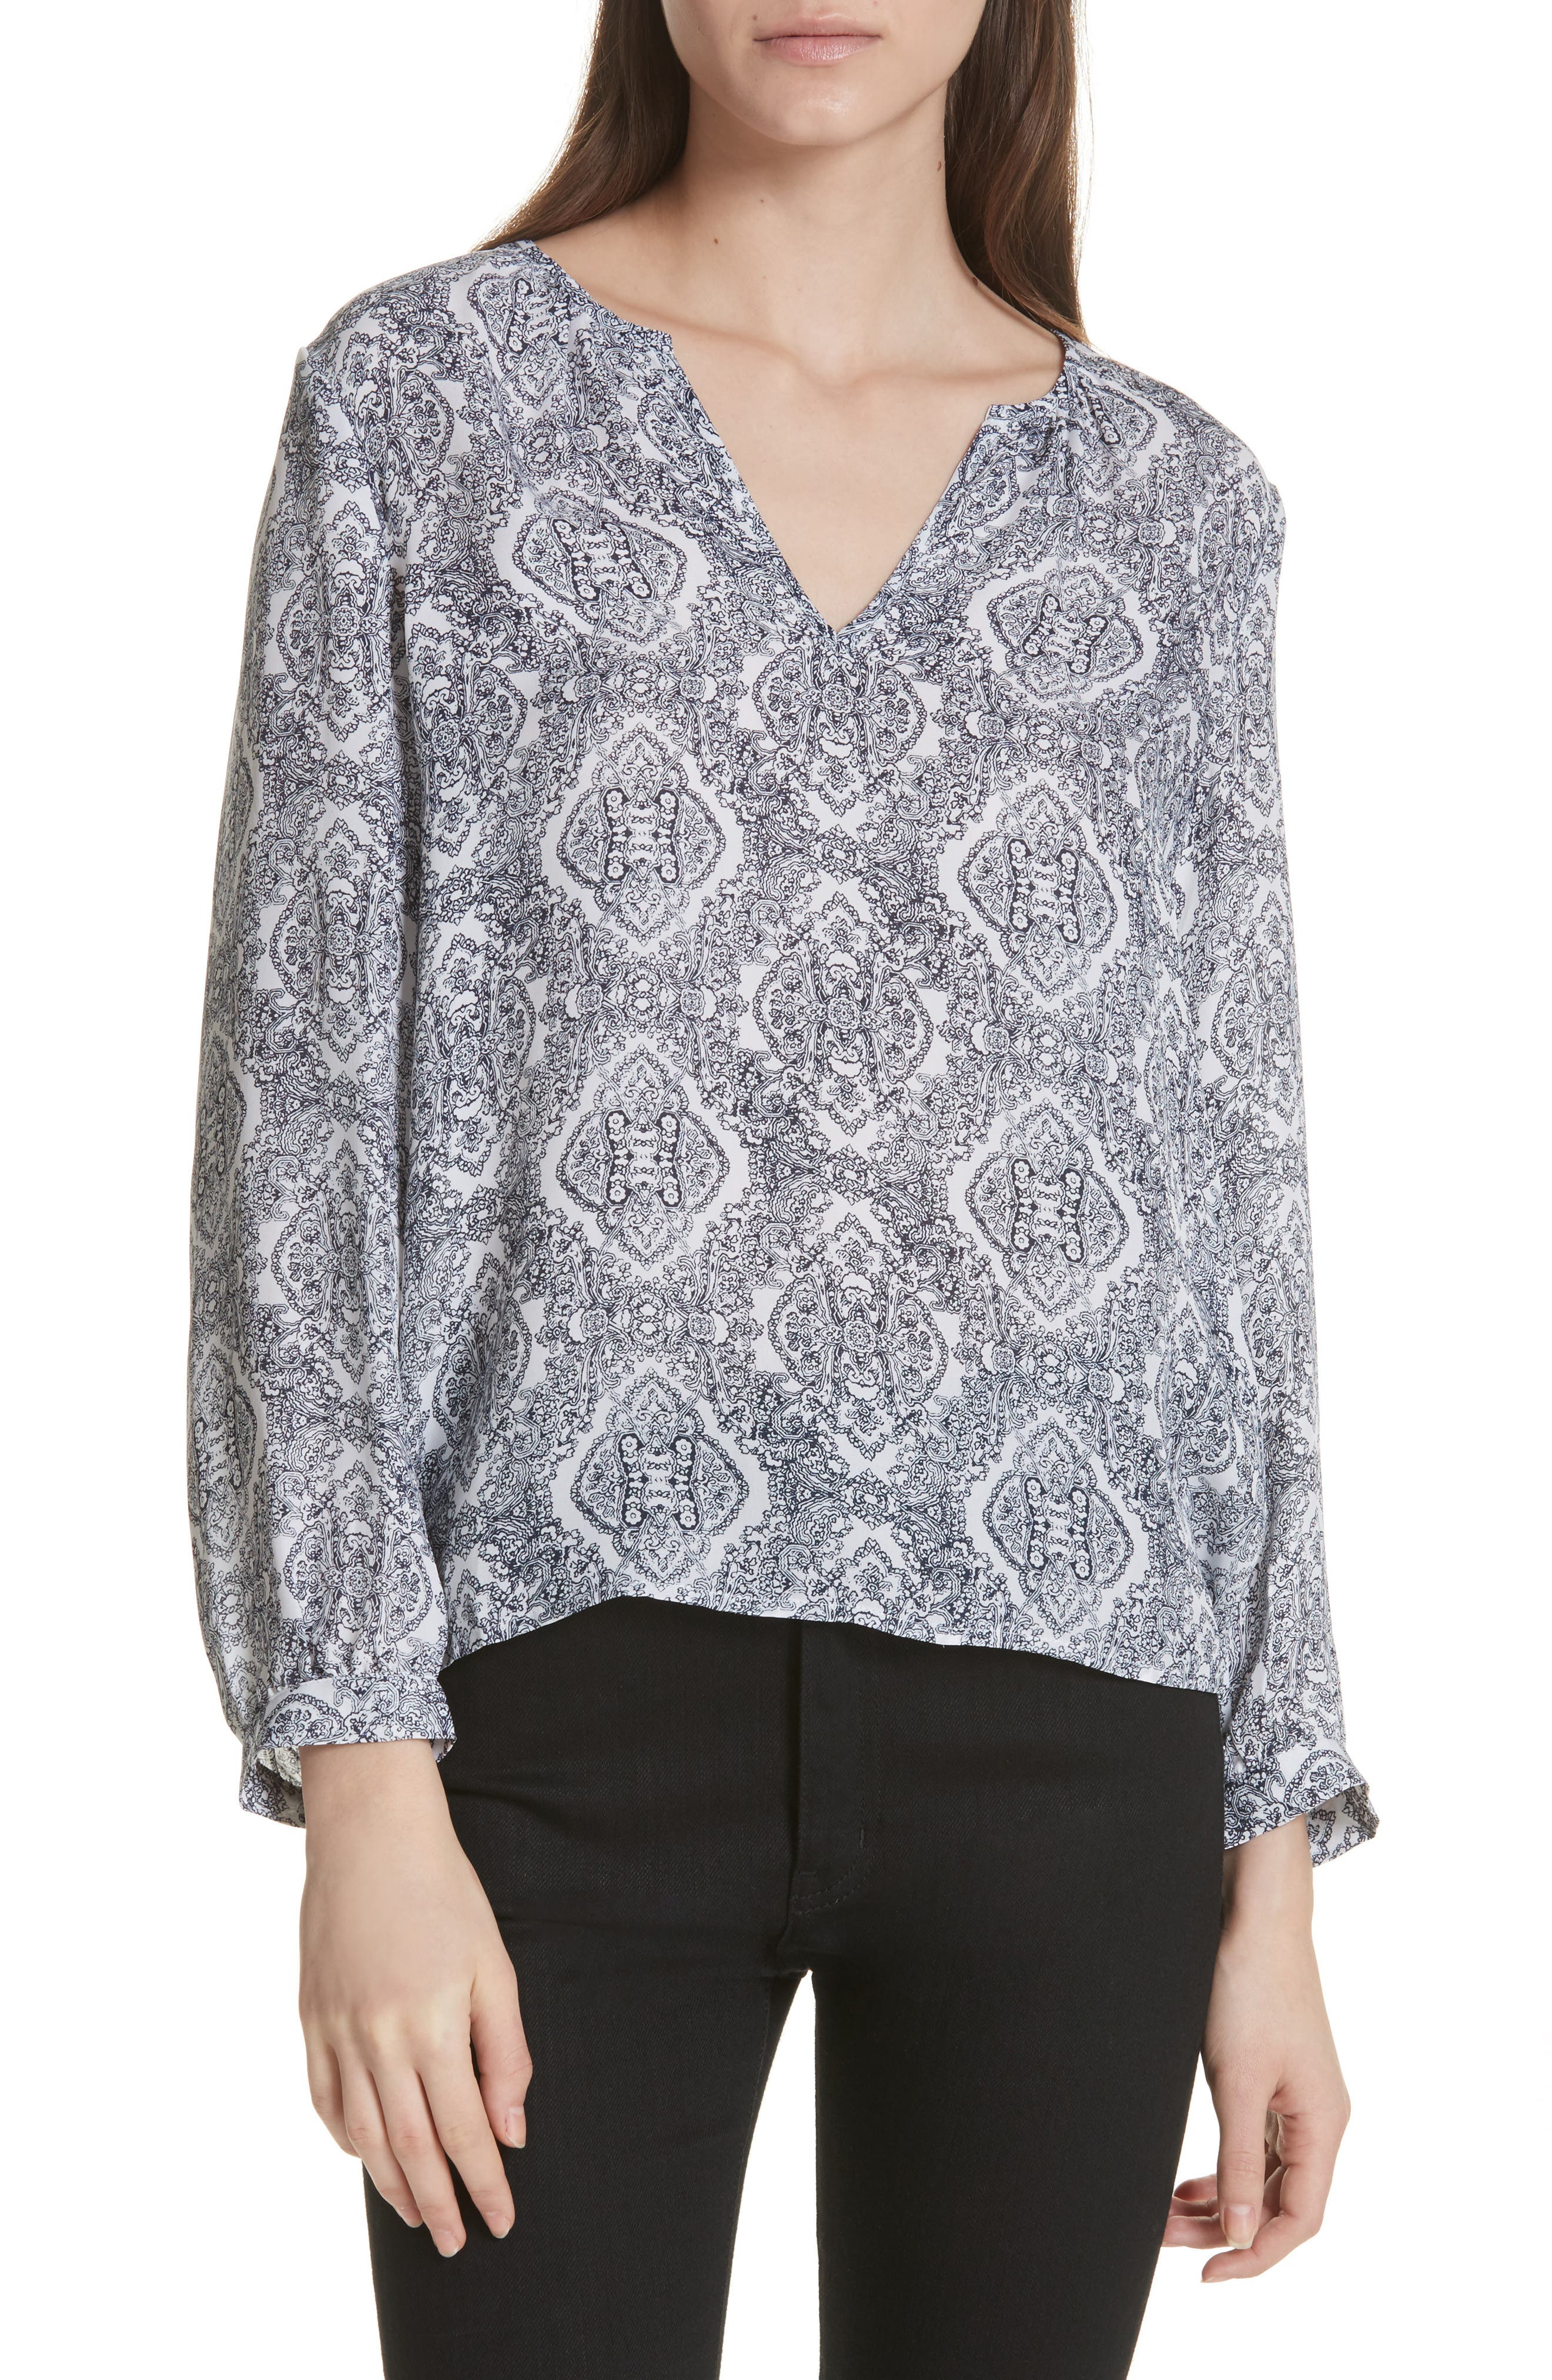 Mauro Silk Blouse,                         Main,                         color, 114